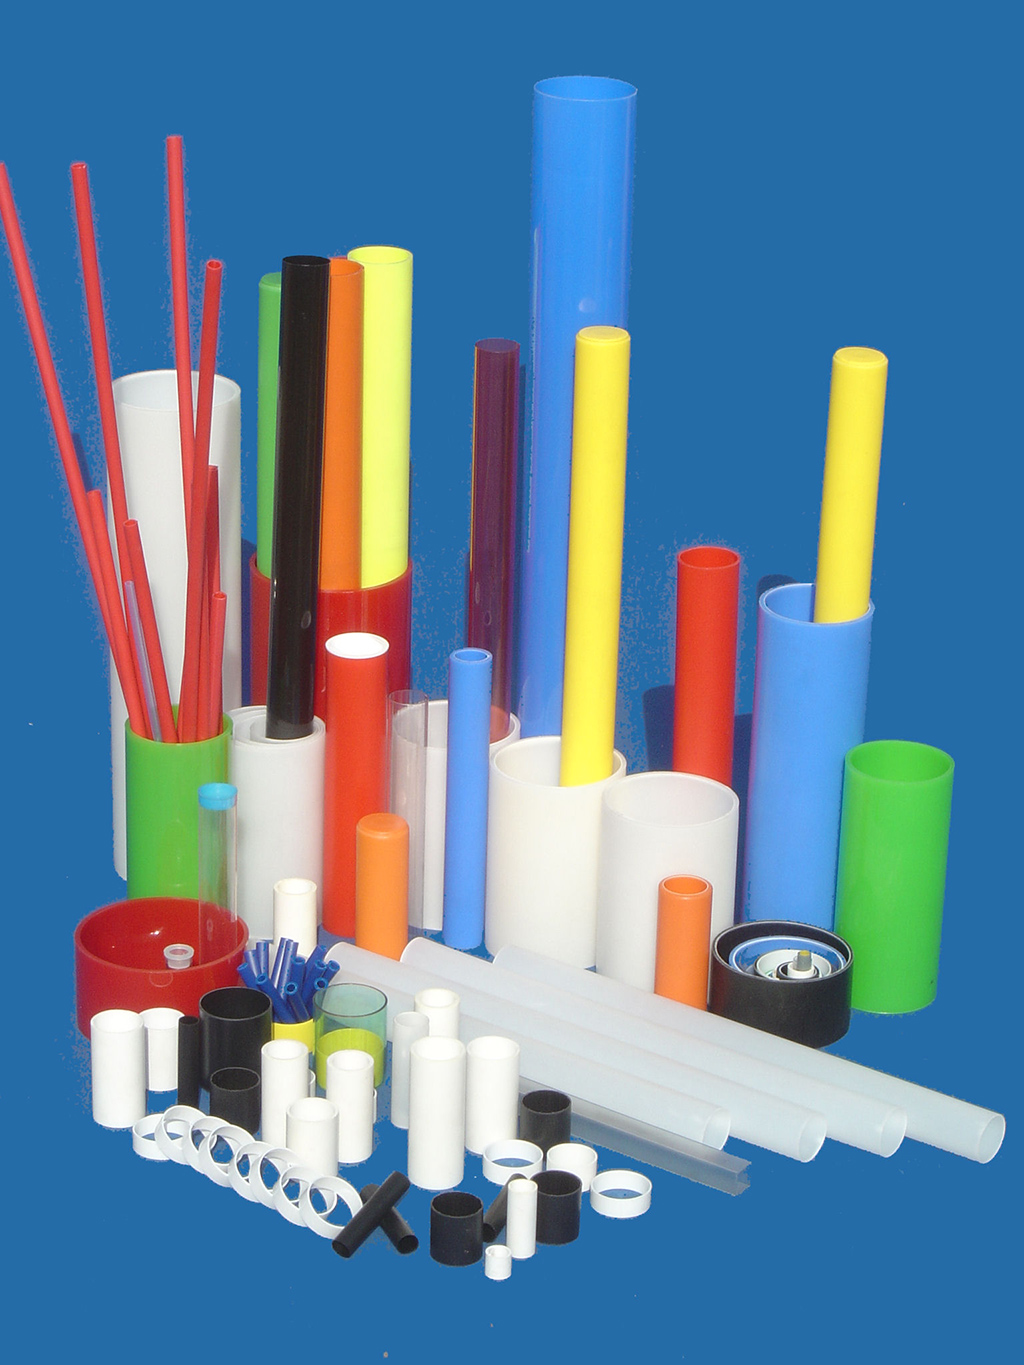 Advertising poles, display stands, sleeved tubes, socket-joint tubes, sleeves, plastic backings